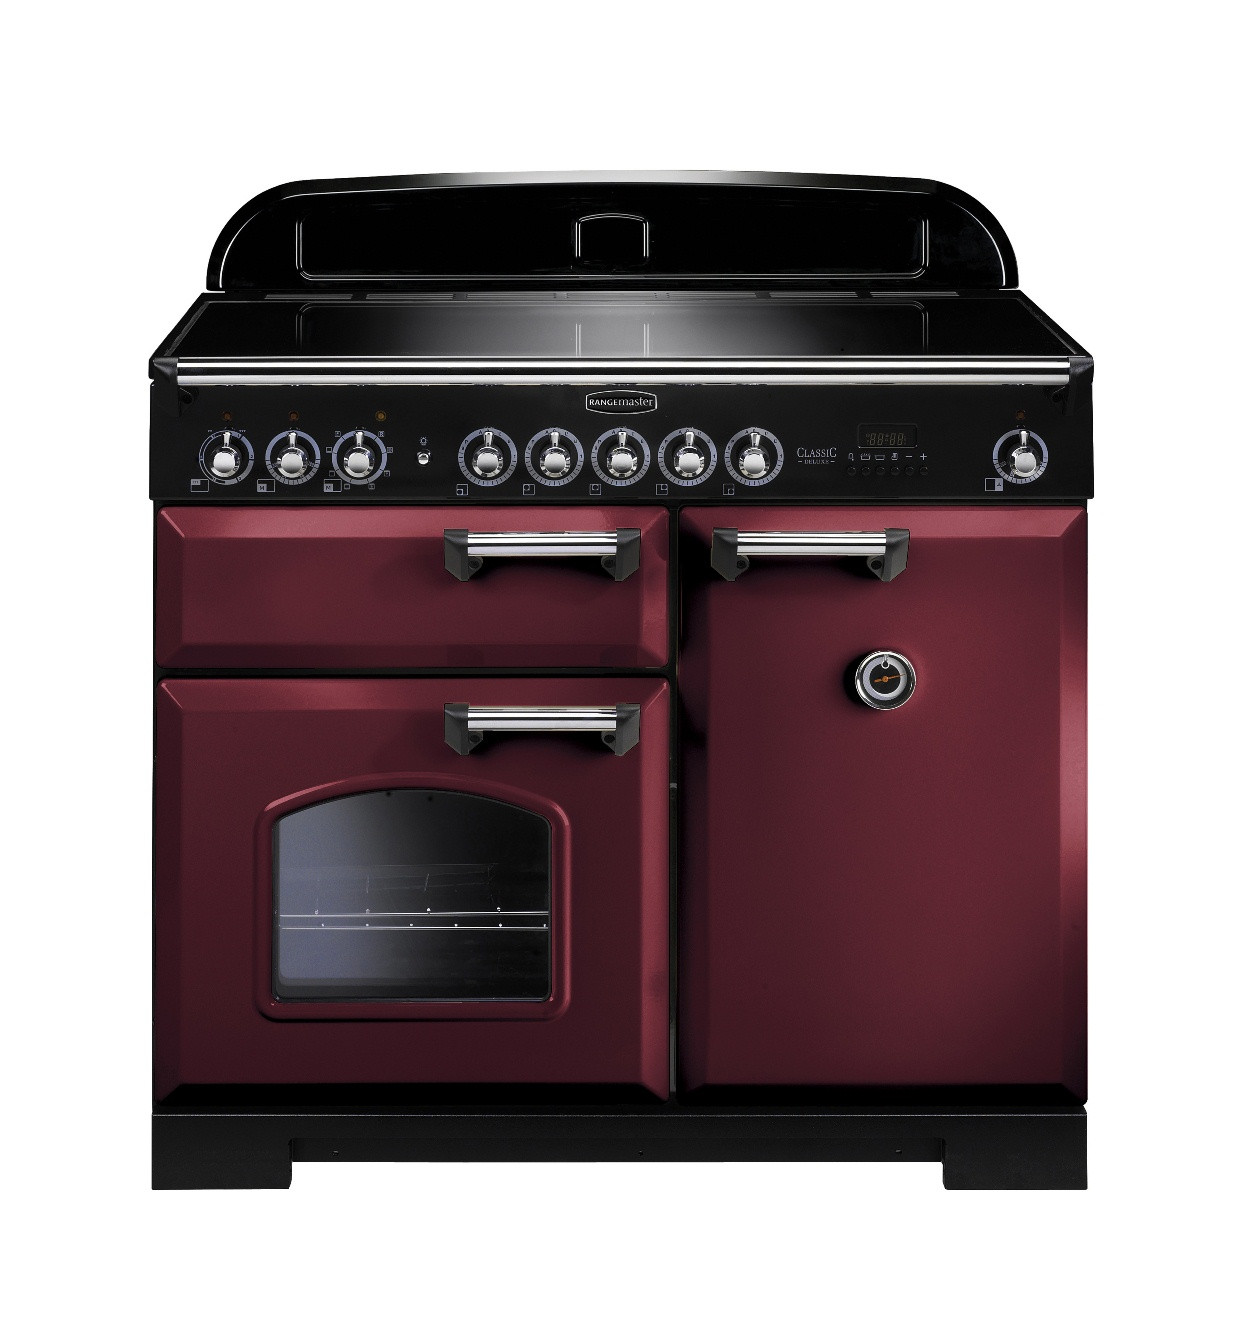 Rangemaster Classic Deluxe 100 Induction Cranberry Chrome Trim Range Cooker CDL100EICY/C 95940